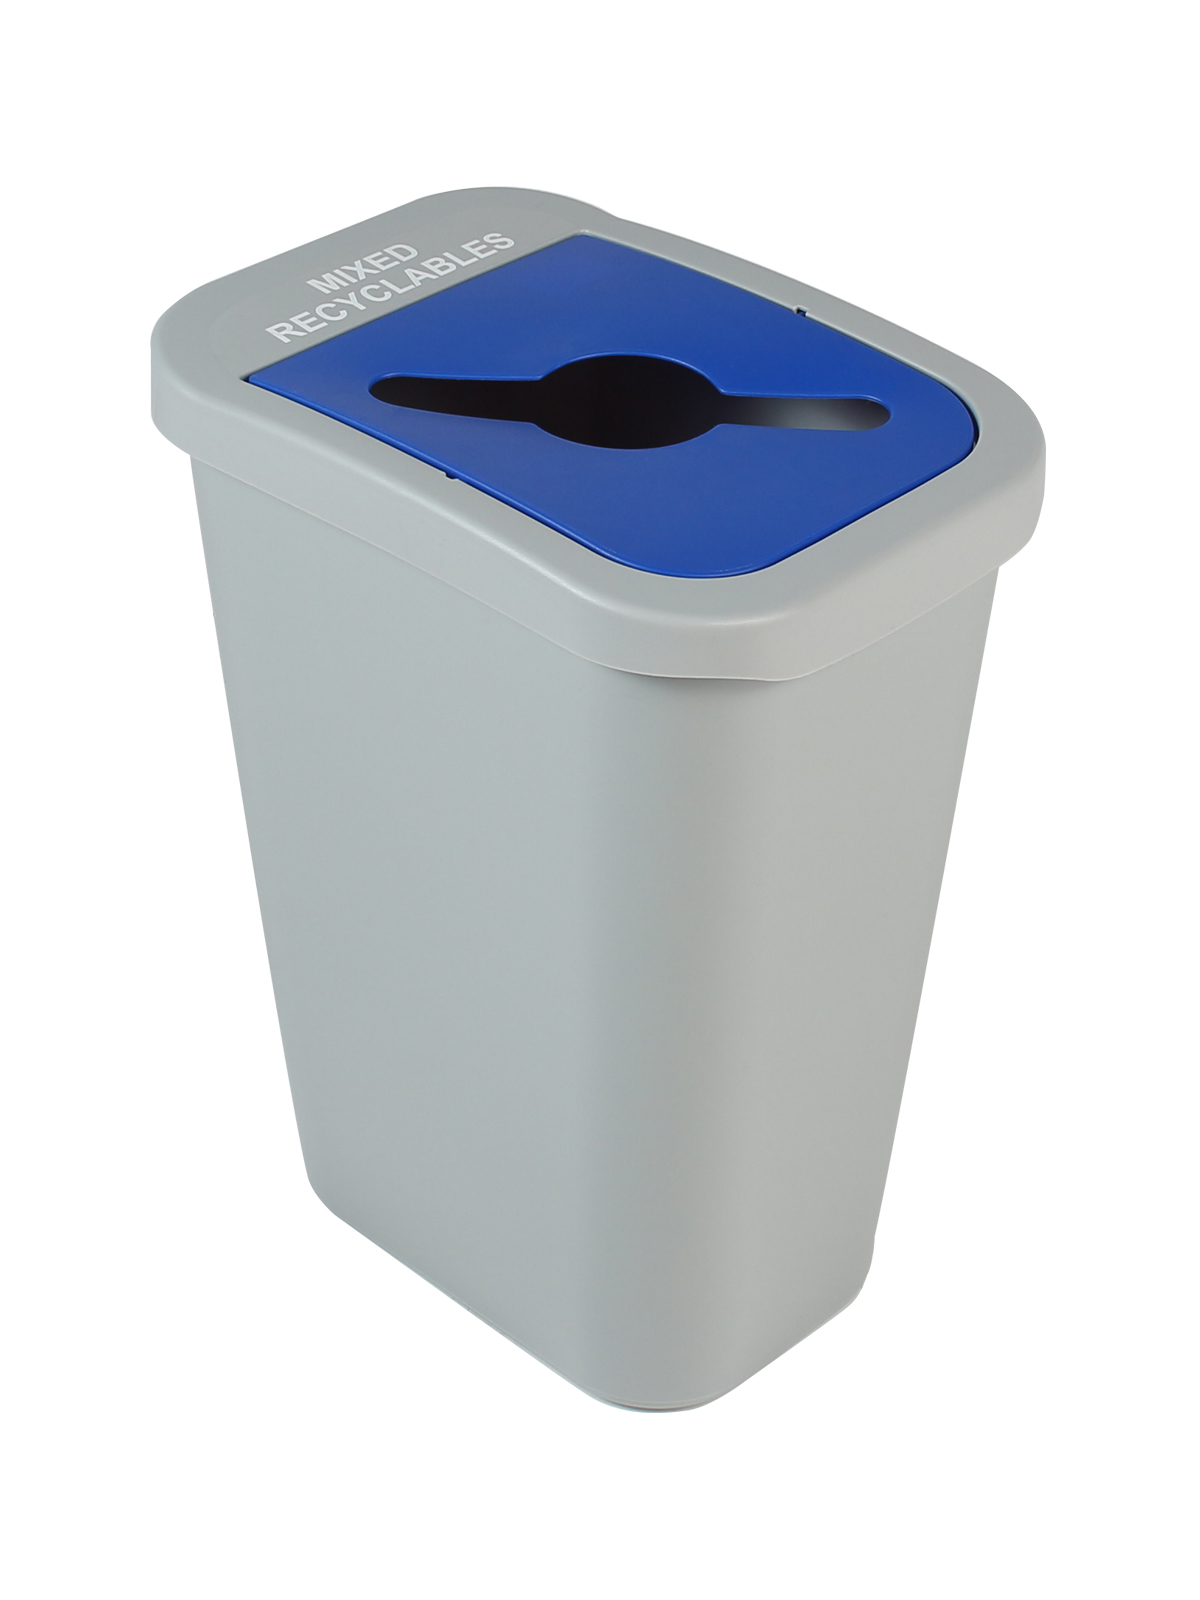 BILLI BOX - Single - 10 G - Mixed Recyclables - Mixed - Grey-Blue title=